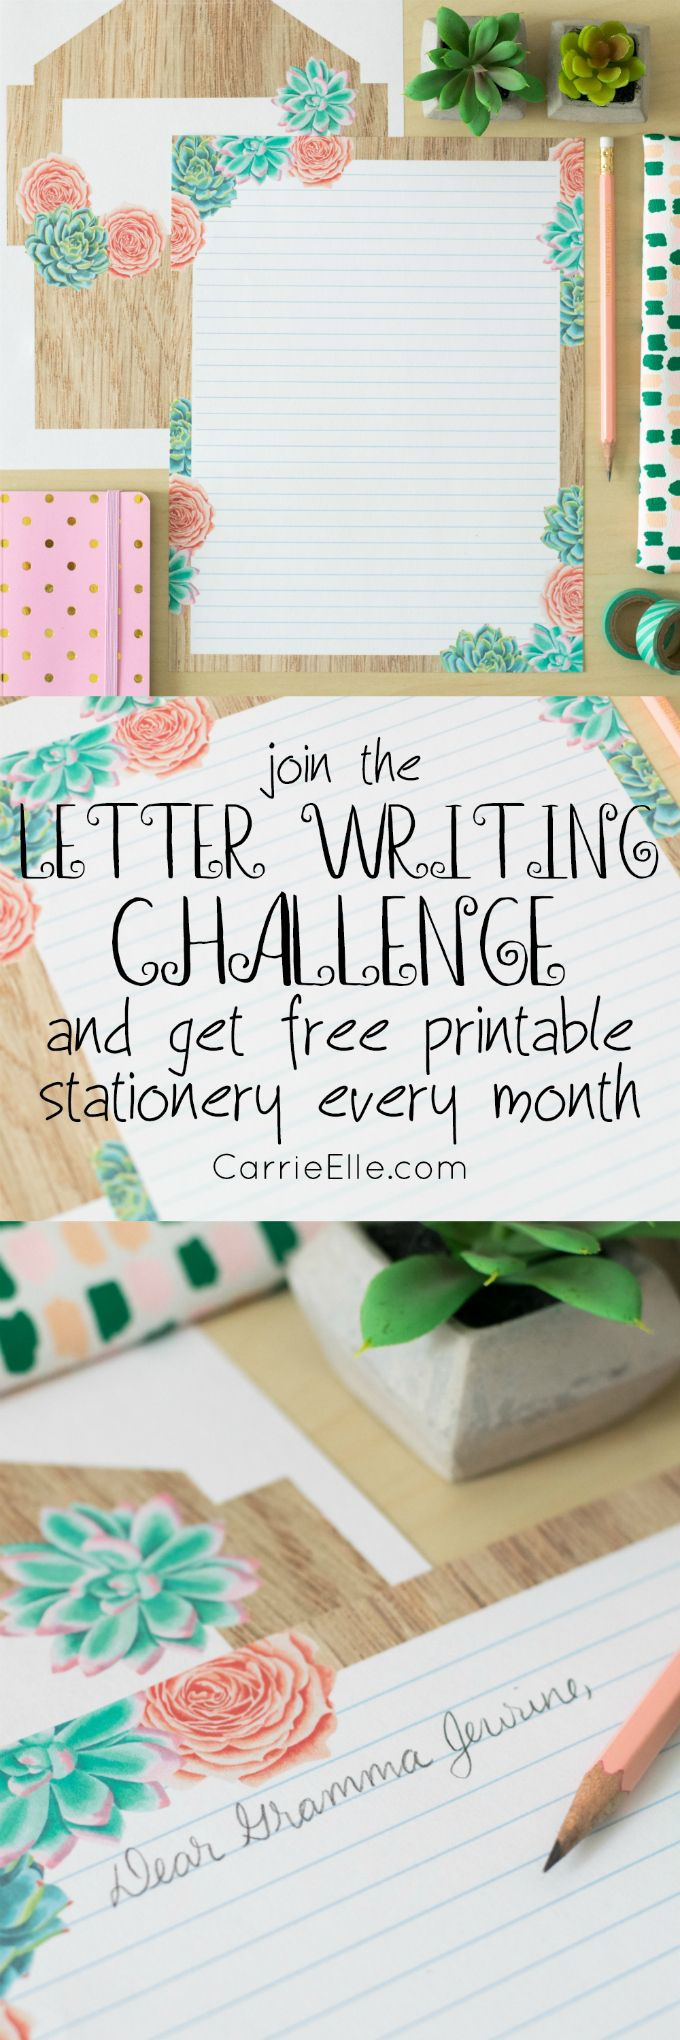 Join the Letter Writing Challenge and Get Free Printable Stationery